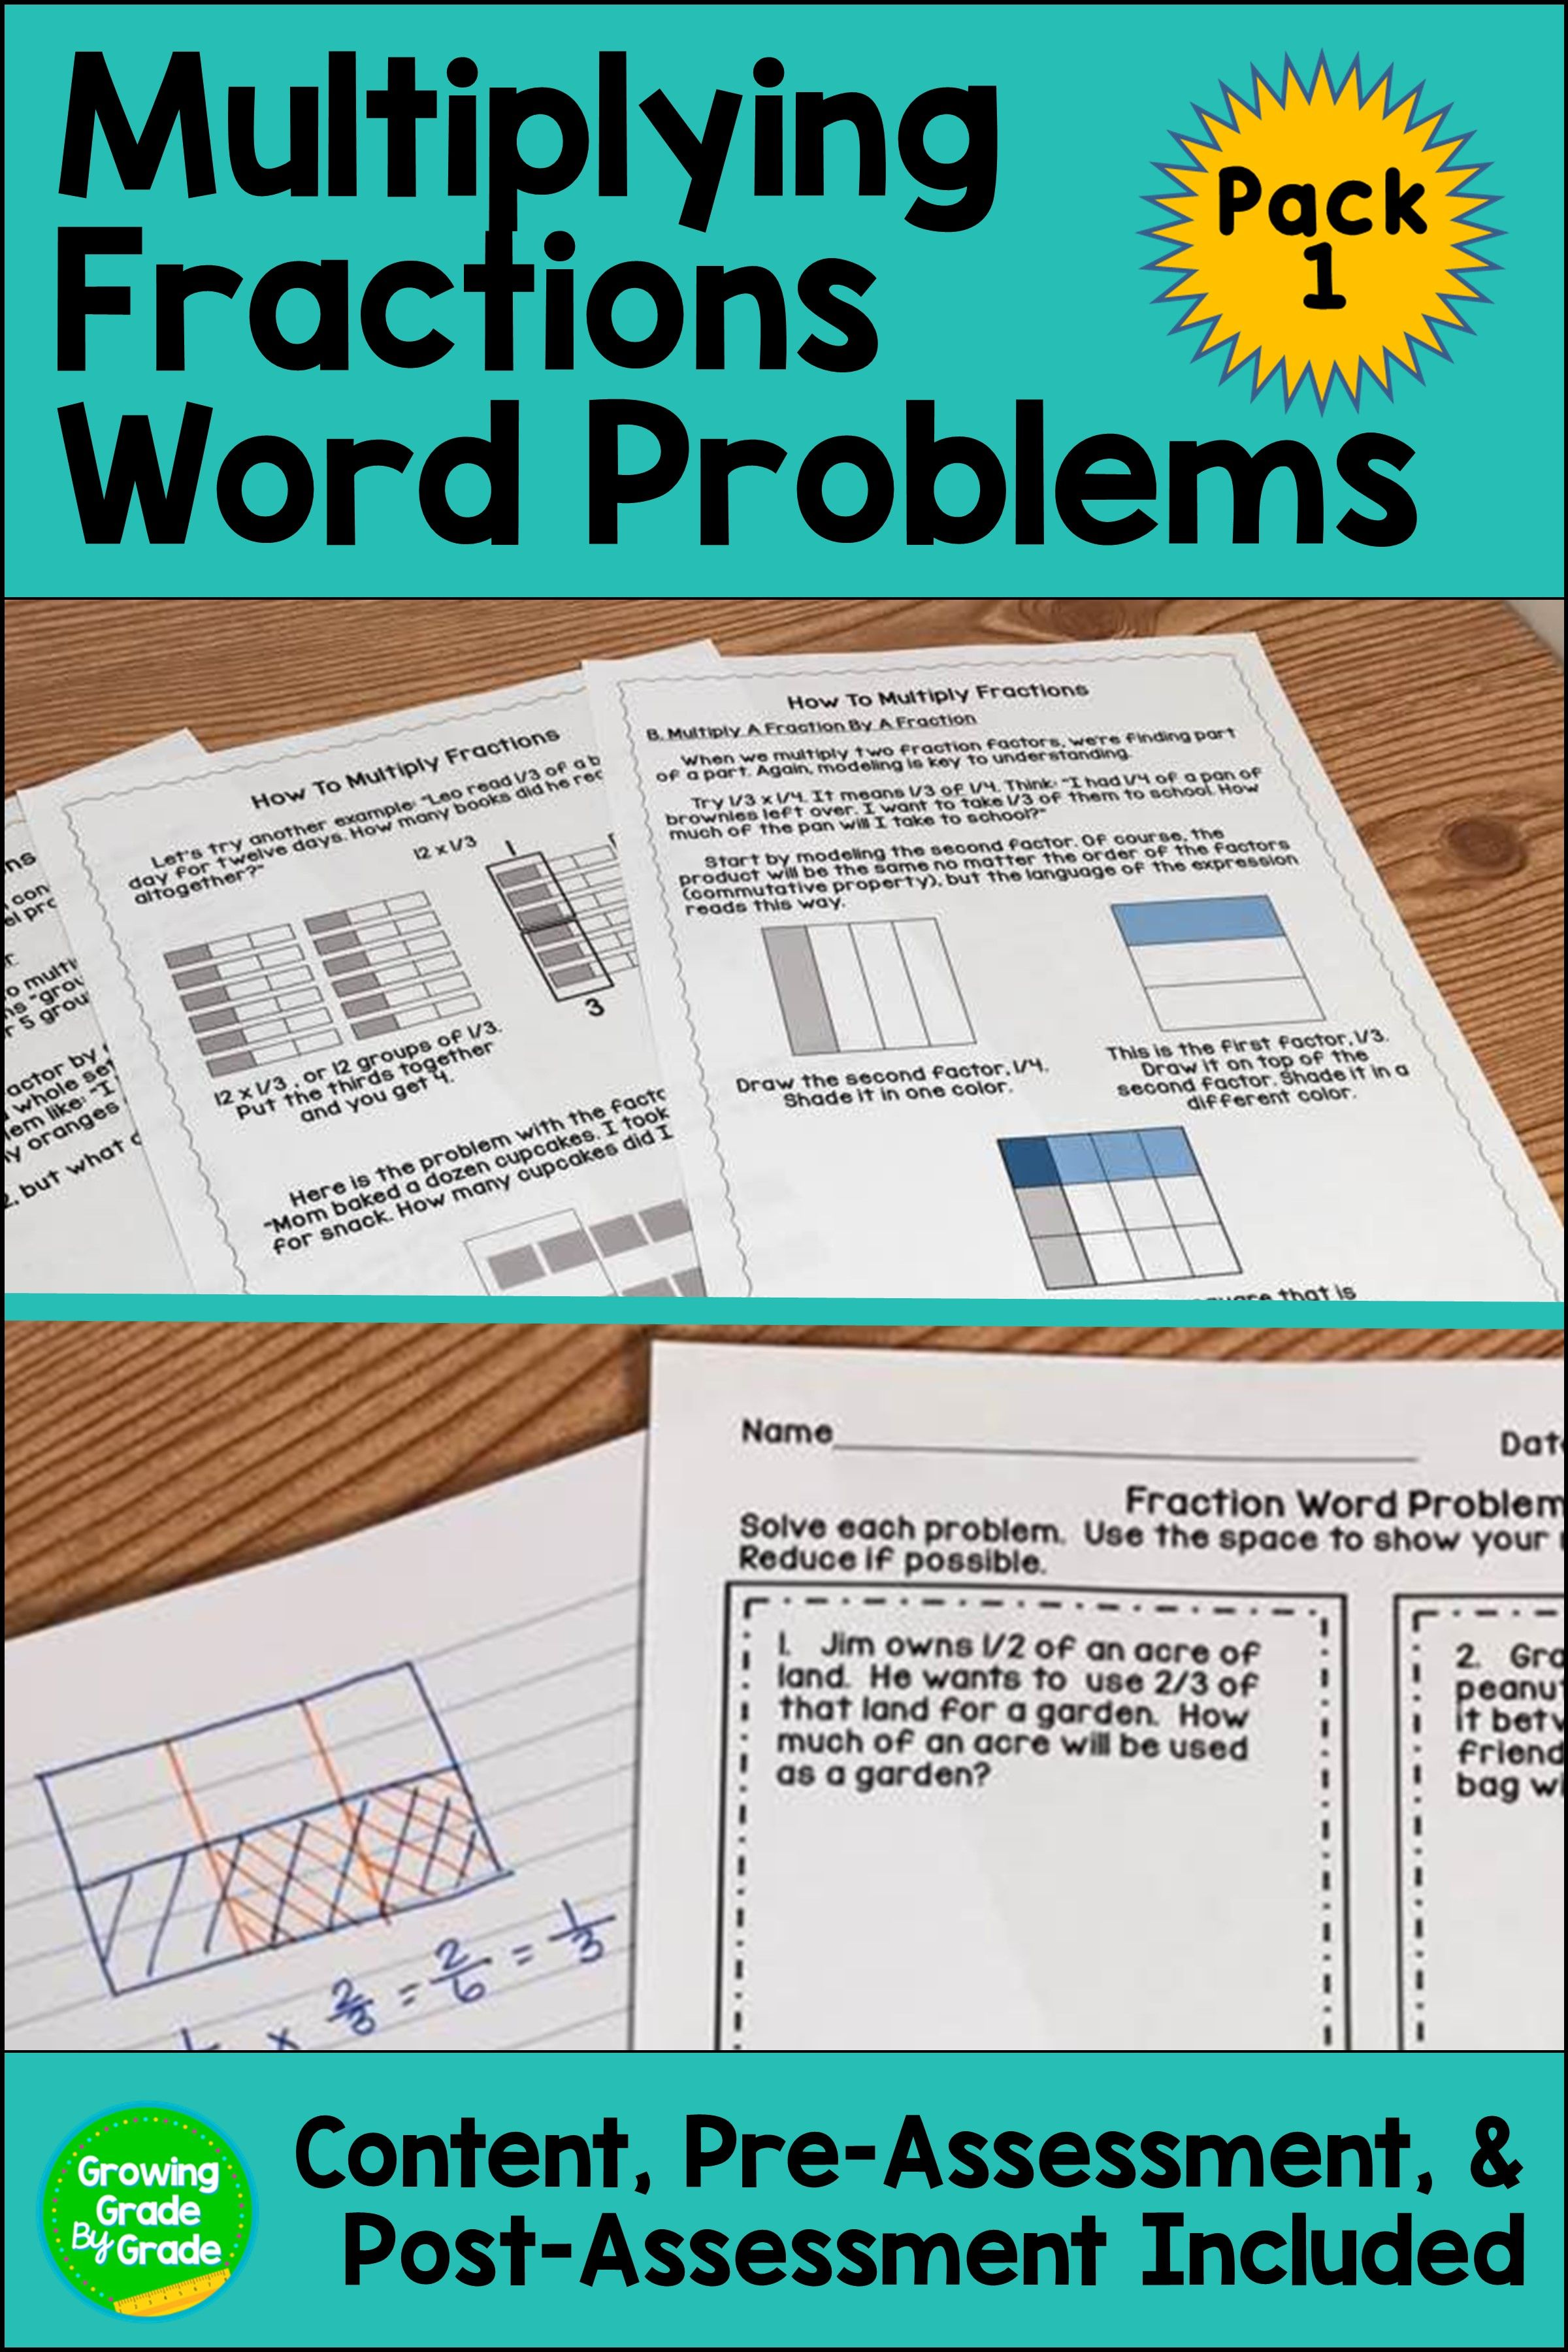 Multiply Fractions Word Problems | Pinterest | Fraction word ...